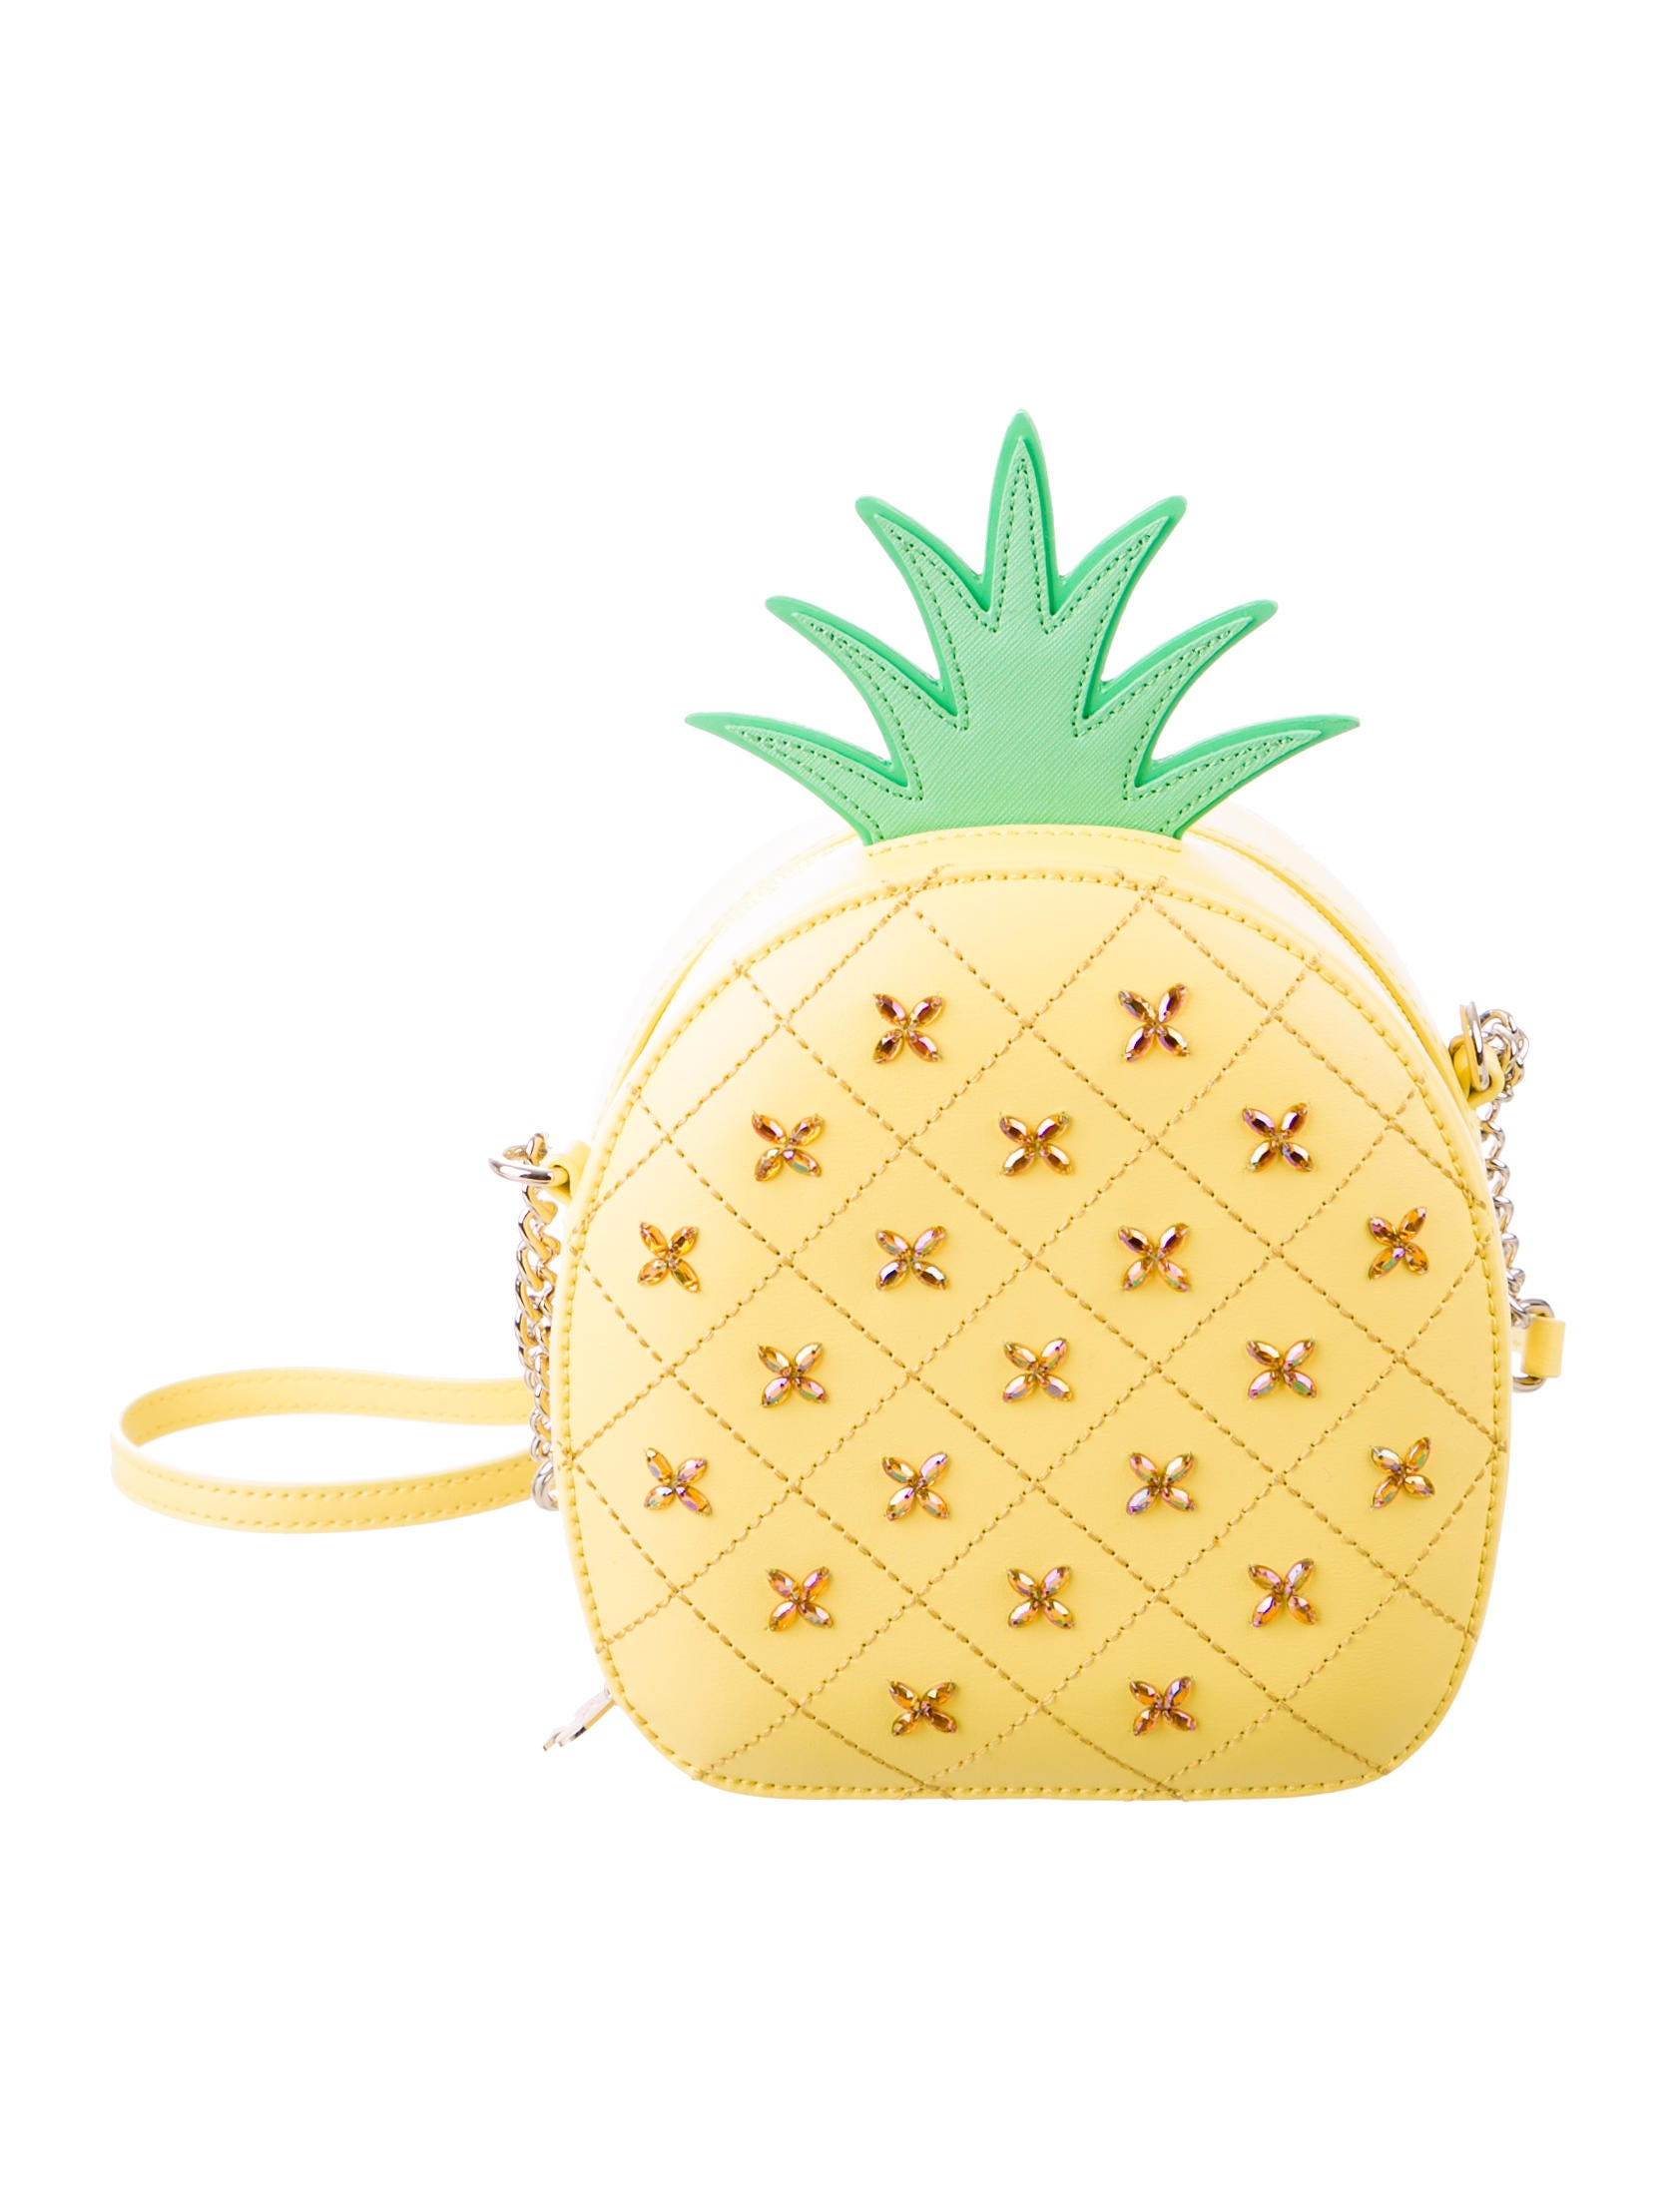 0e38bbc87ac6 Kate Spade New York How Refreshing Pineapple Crossbody Bag ...